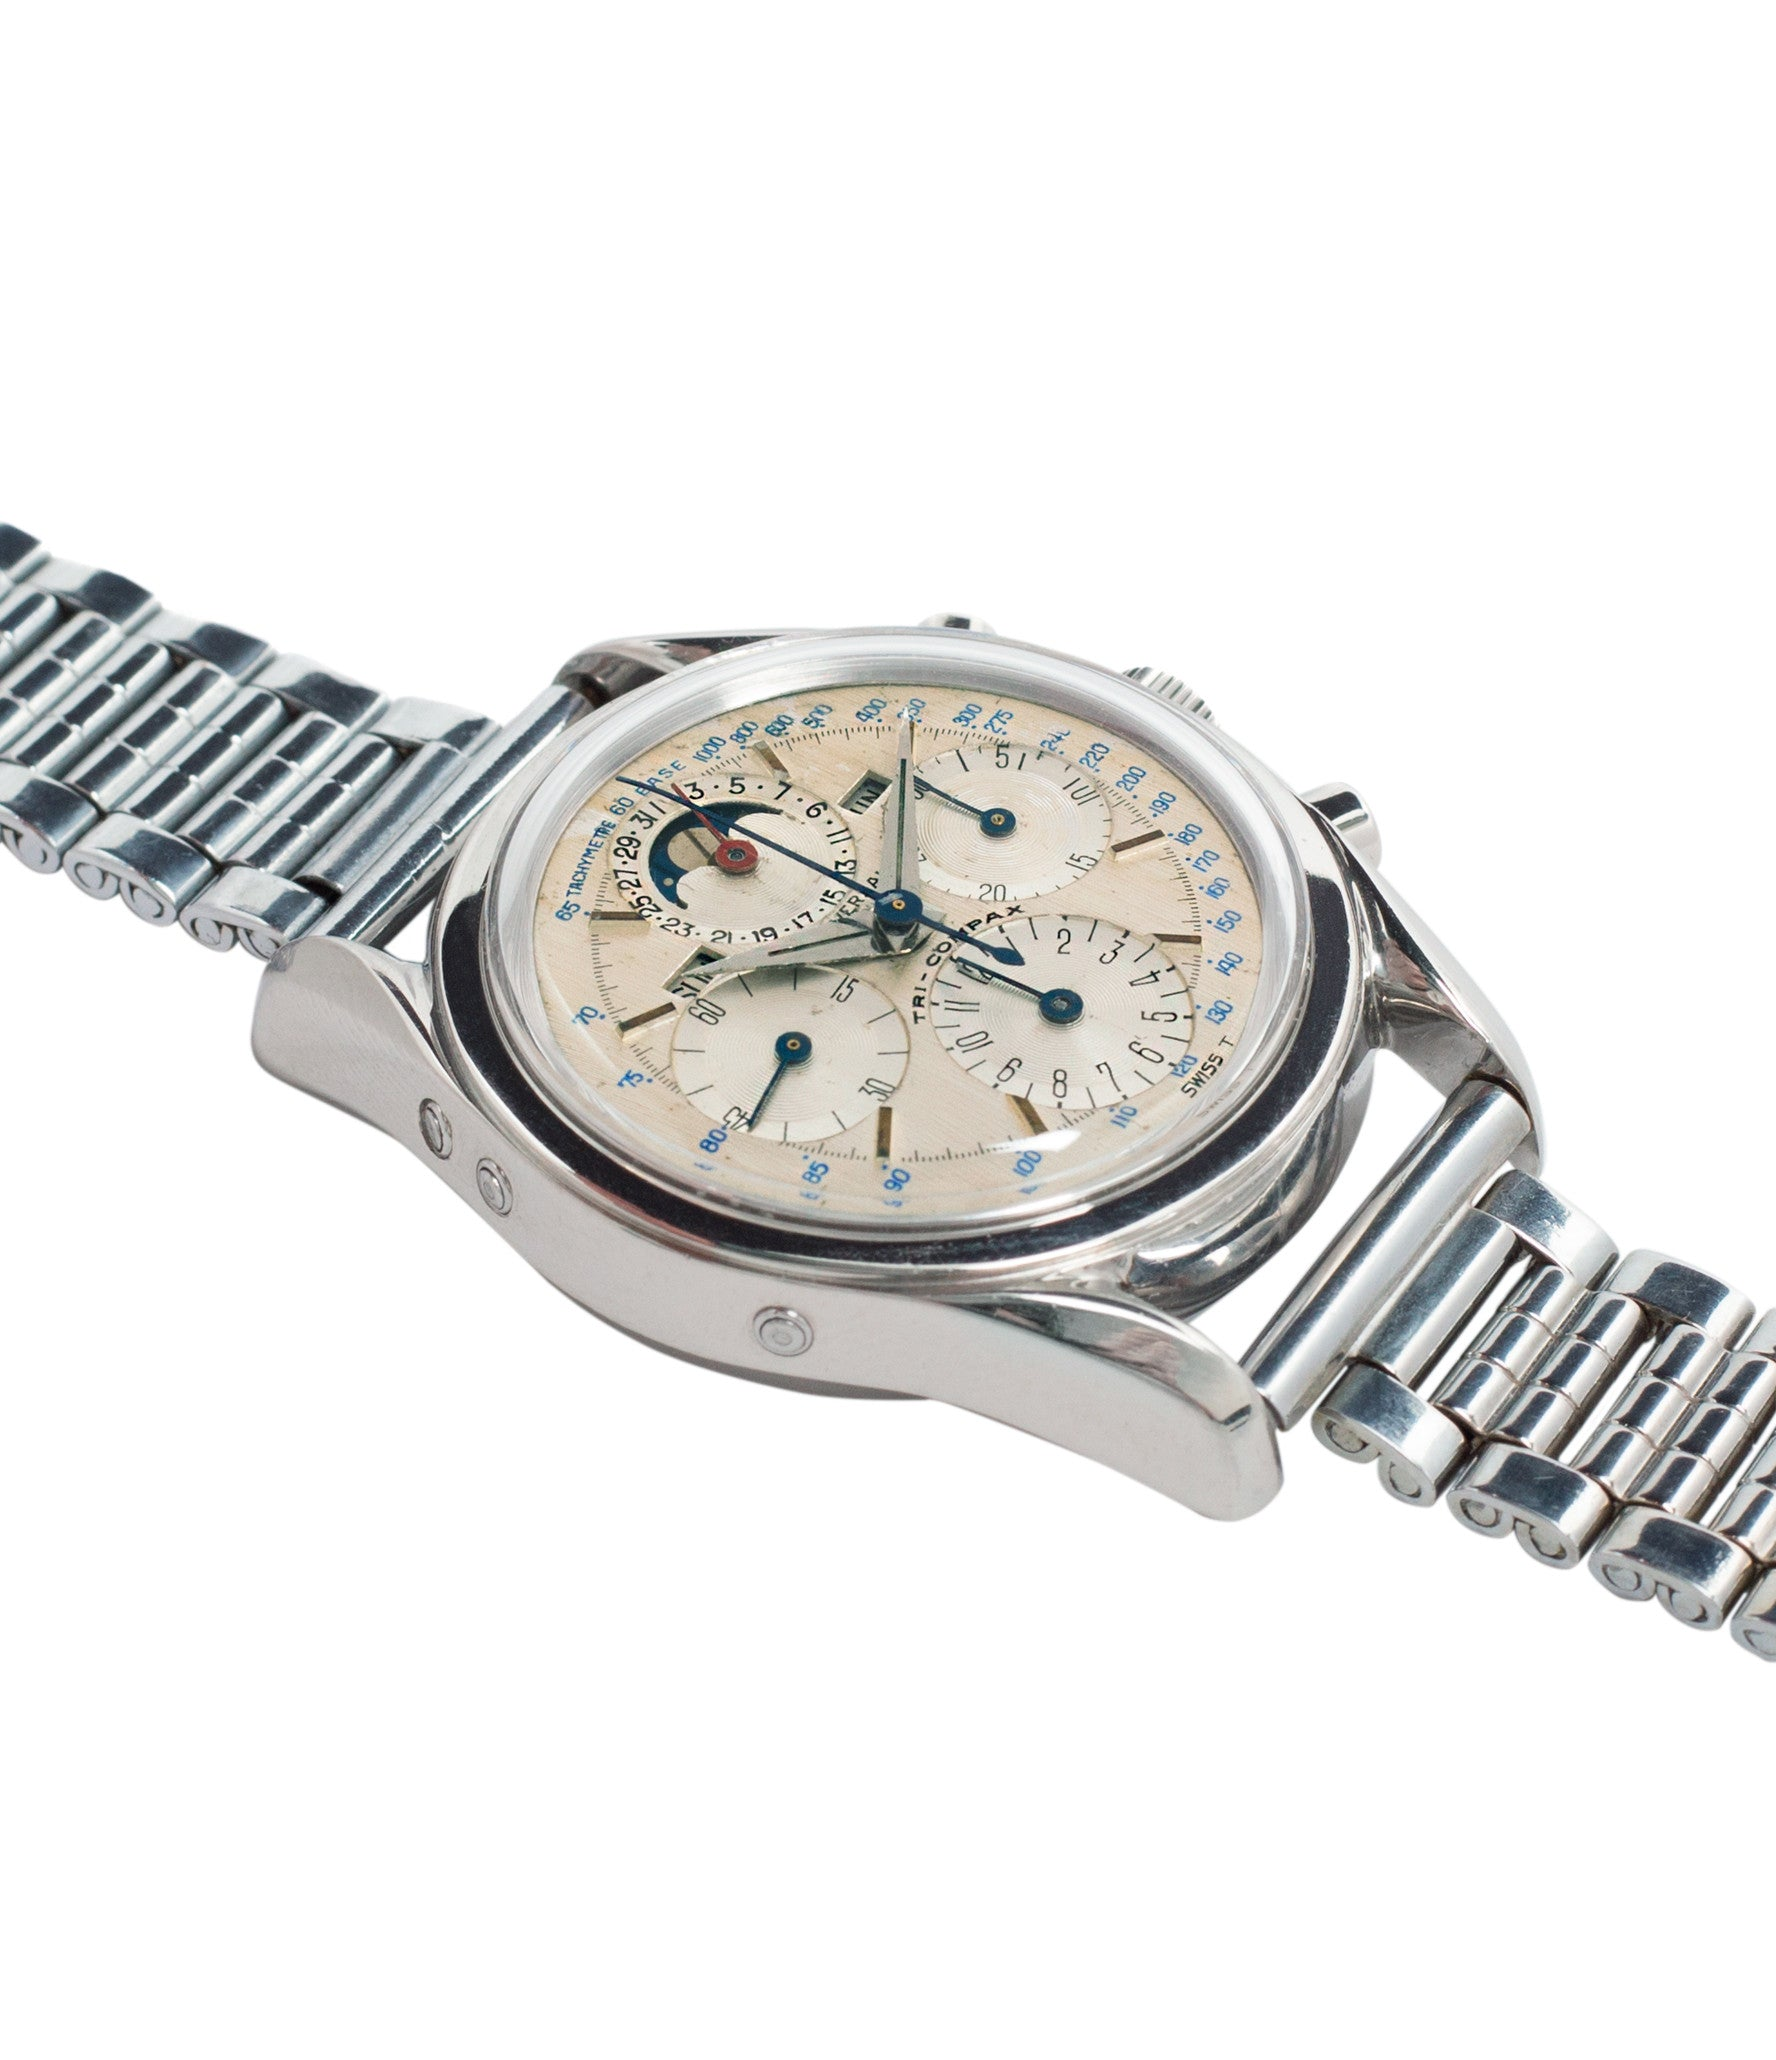 for sale steel Universal Geneve 222100/2 Tri-Compax Triple Calendar Moonphase steel chronograph watch for sale online at A Collected Man London rare vintage watch specialist